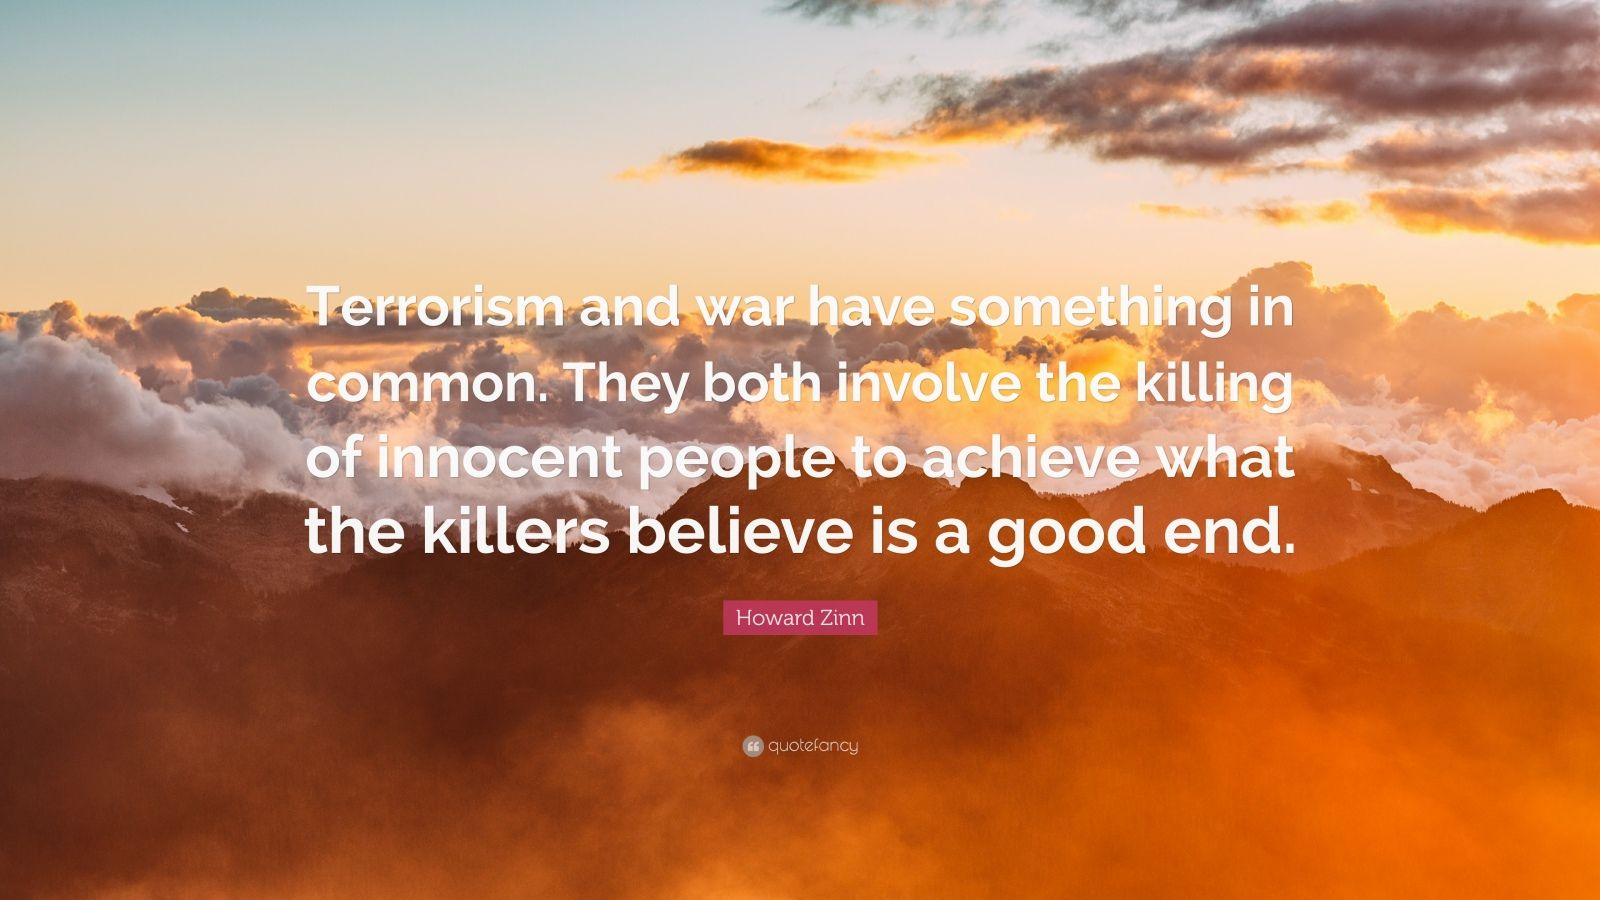 """Howard Zinn Quote: """"Terrorism and war have something in common. They both involve the killing of innocent people to achieve what the killers believe is a good end."""""""